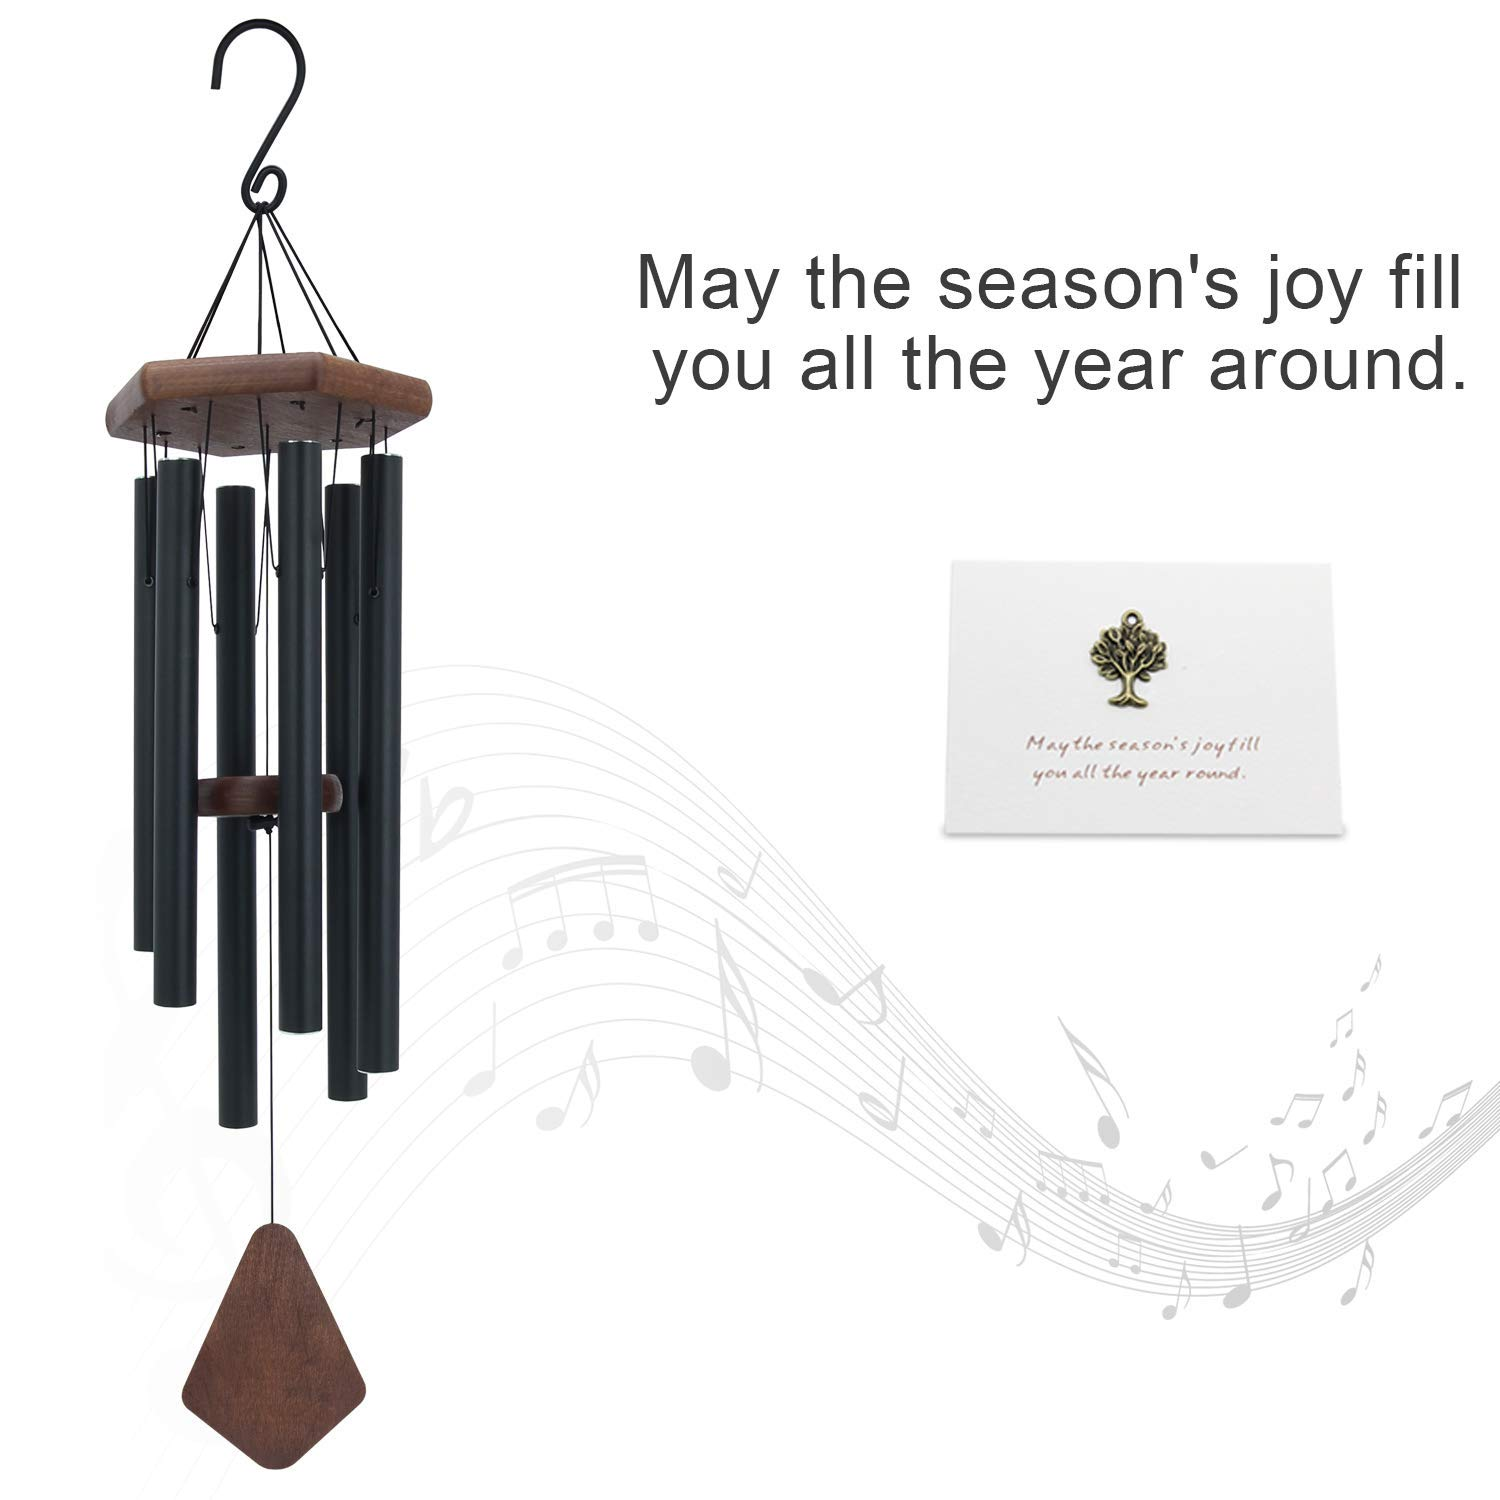 Wind Chimes Outdoor Large Deep Tone, 44 Inch Sympathy Wind Chime Amazing Grace Outdoor, Memorial Wind-Chime with 6 Tuned Tubes, Elegant Chime for Garden, Patio, Balcony and Home Decor, Matte Black by Astarin (Image #5)